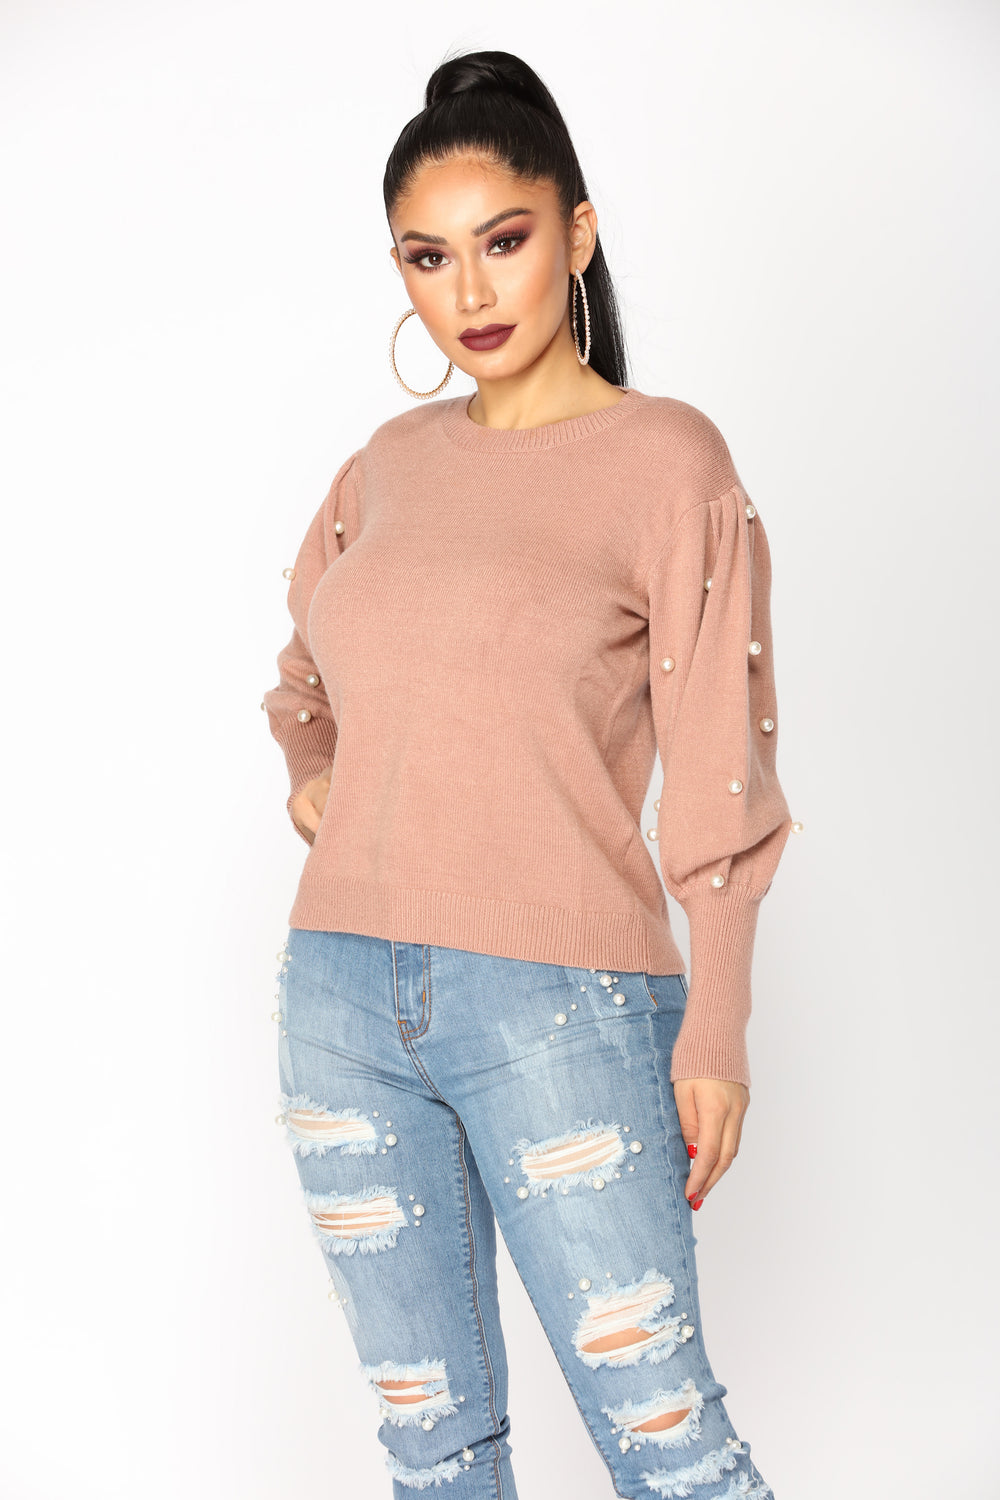 Pearled Dream Sweater - Blush